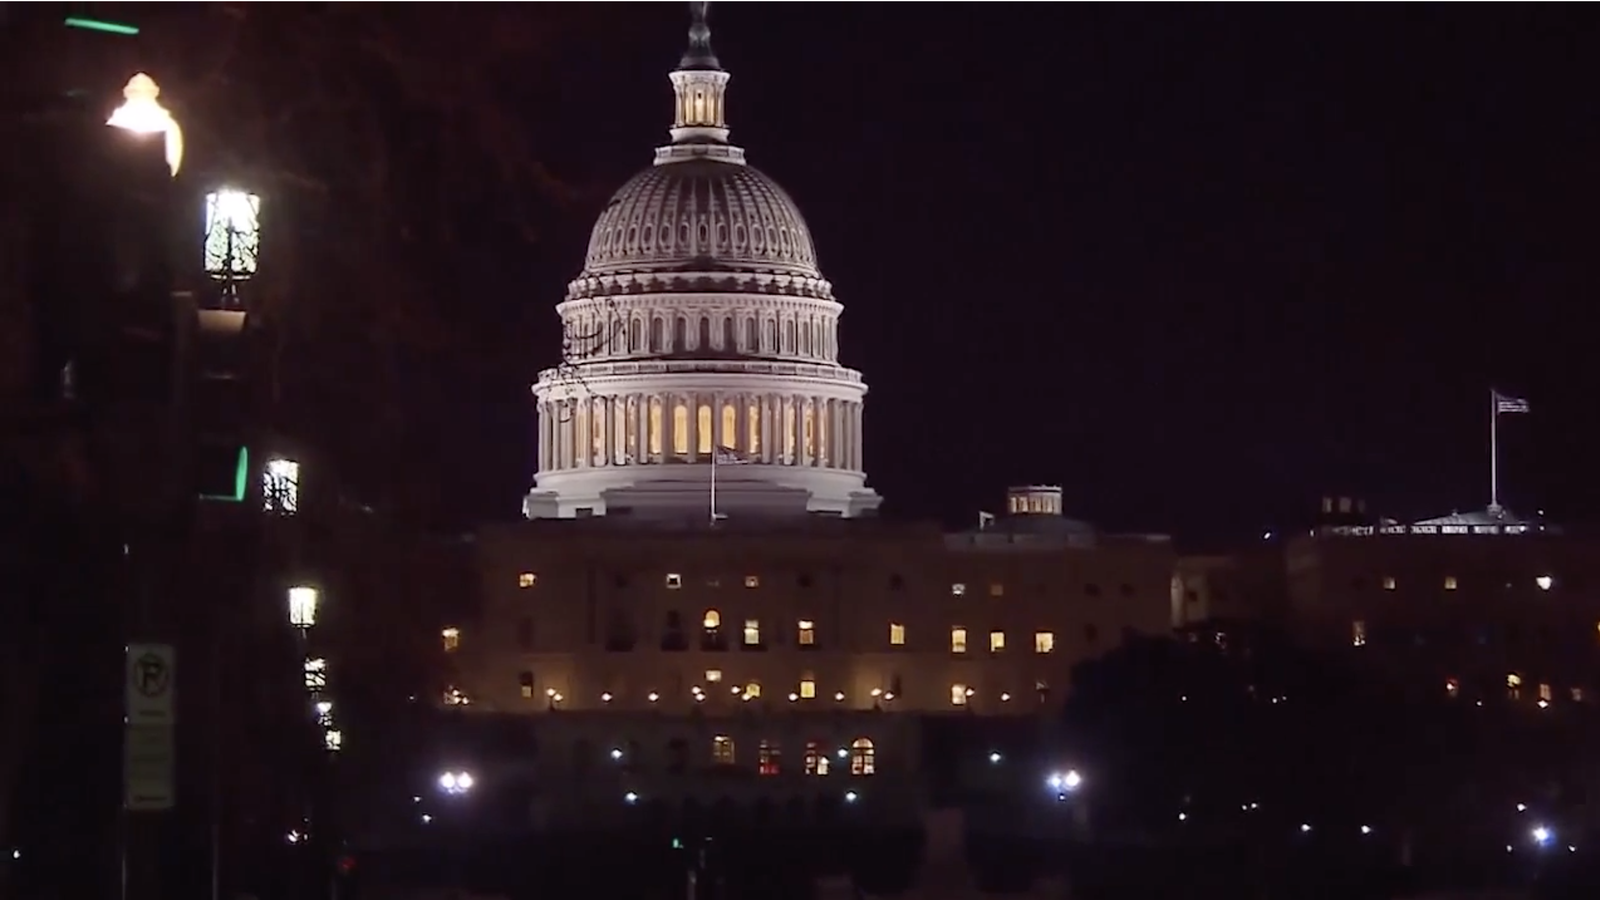 Impeachment proceedings mean late night for lawmakers on Capitol Hill (Photo: Sinclair Broadcast Group)